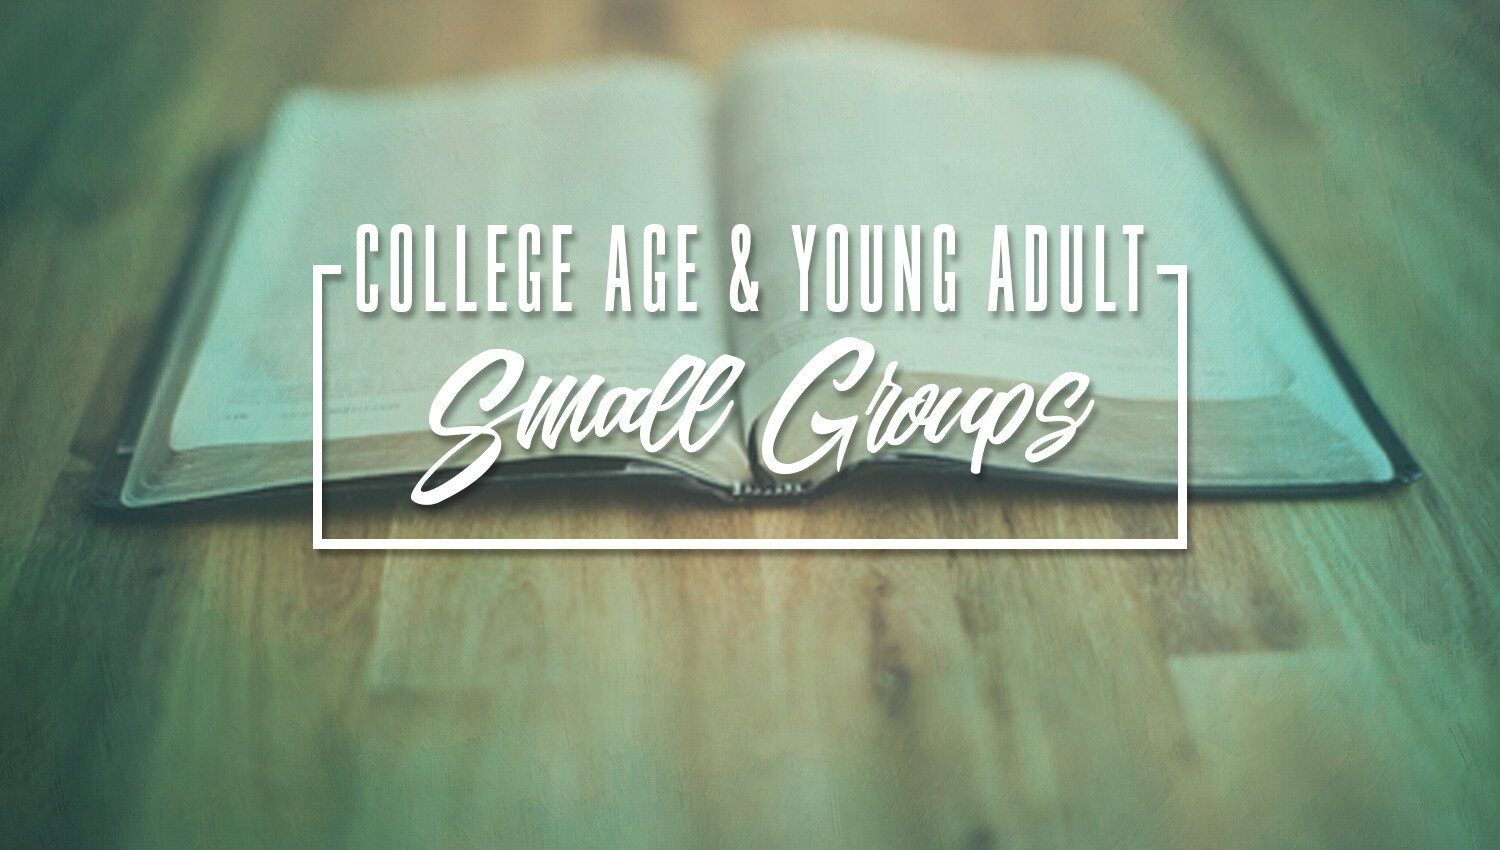 Home & Small Group Opportunities for Young Adults